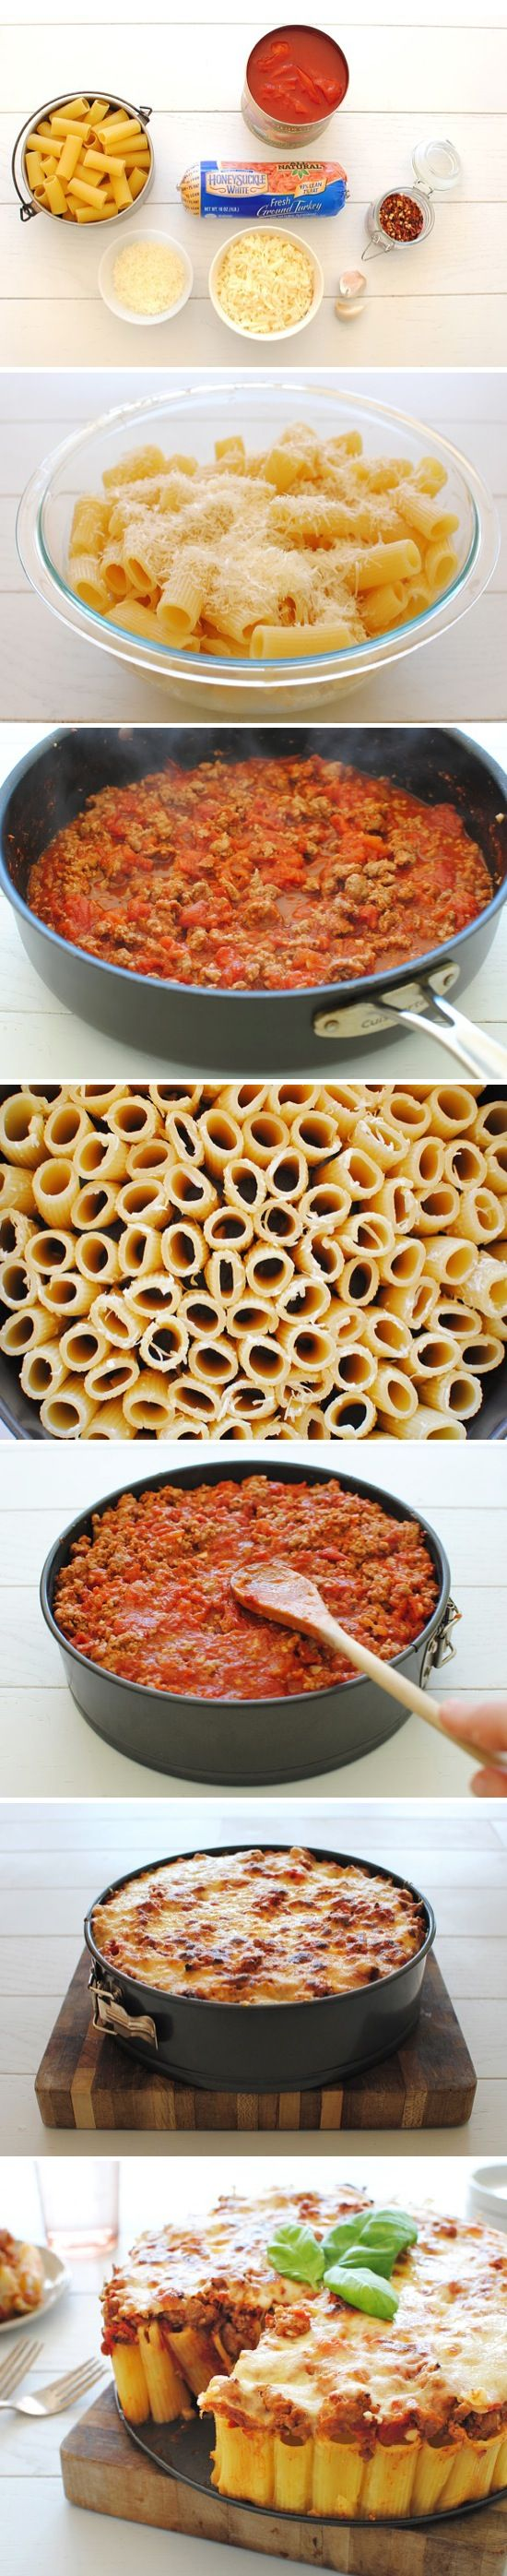 Pasta Pie | Recipe By Photo